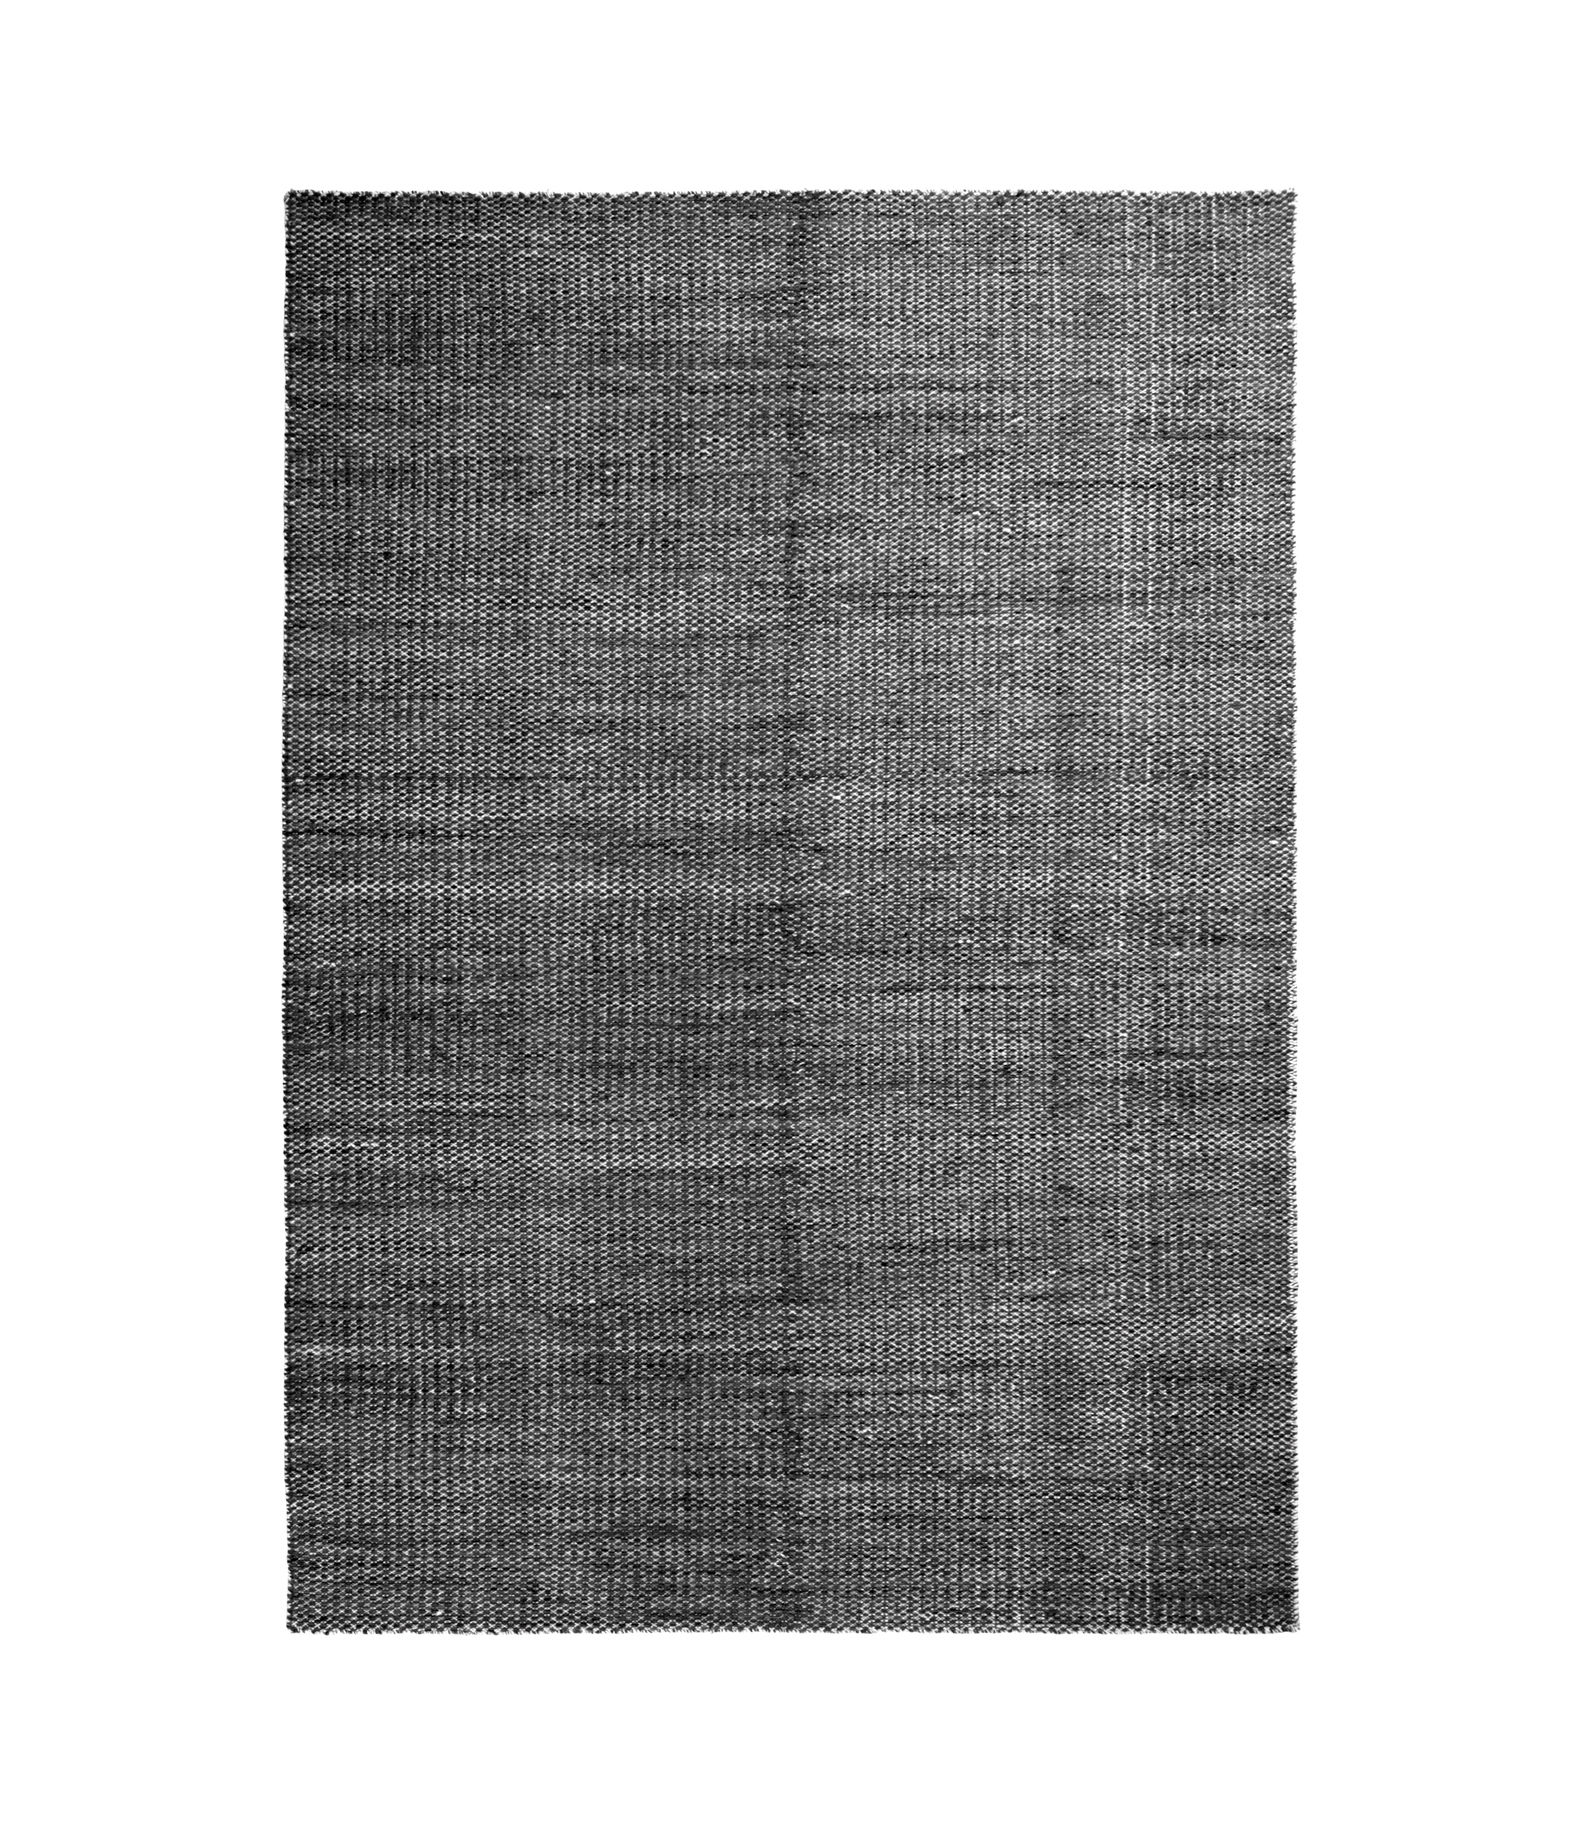 Decoration - Rugs - Moiré Kelim Small Rug - / Handwoven - 140 x 200 cm by Hay - Black - Wool